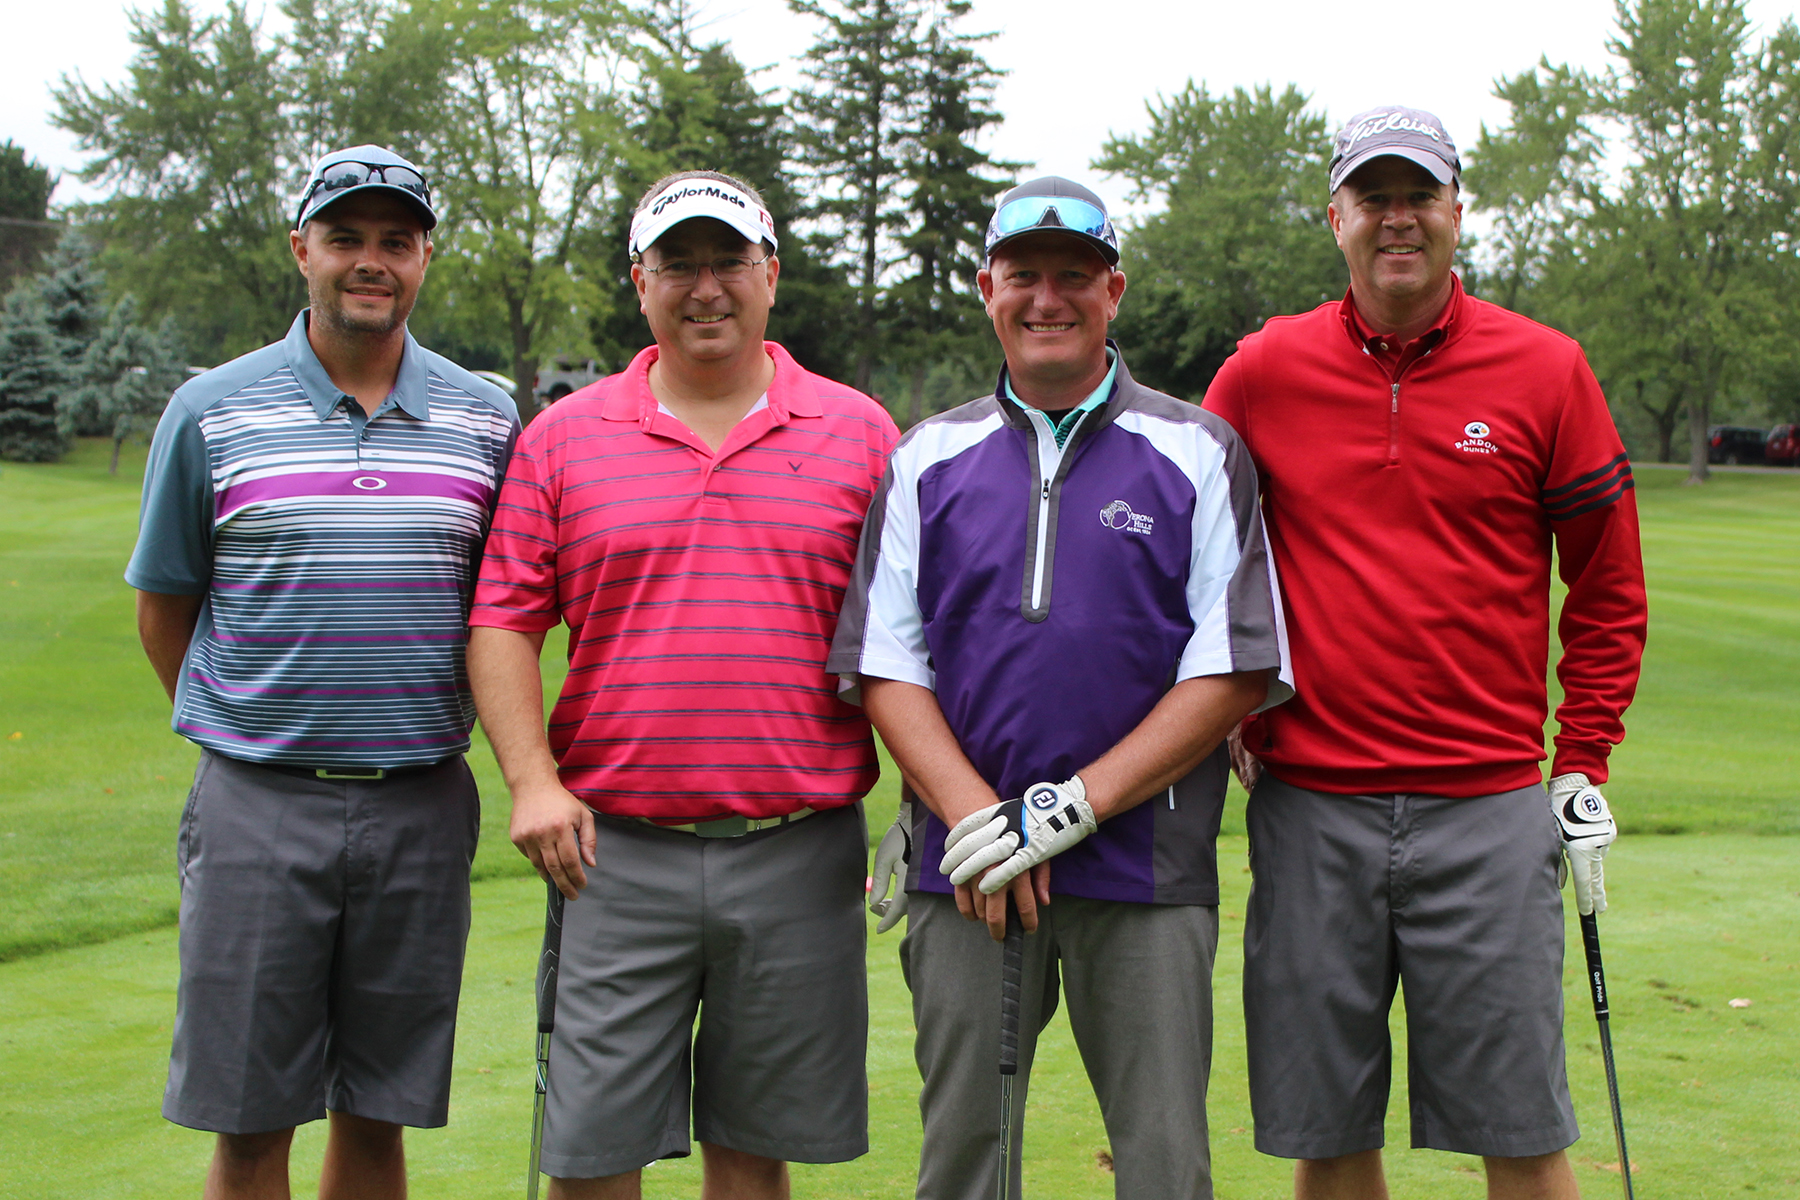 The winner of the men's division for the Marlette Regional Hospital Foundation's Driving for Health Golf Scramble was Marlette Roofing & Sheet Metal Co.